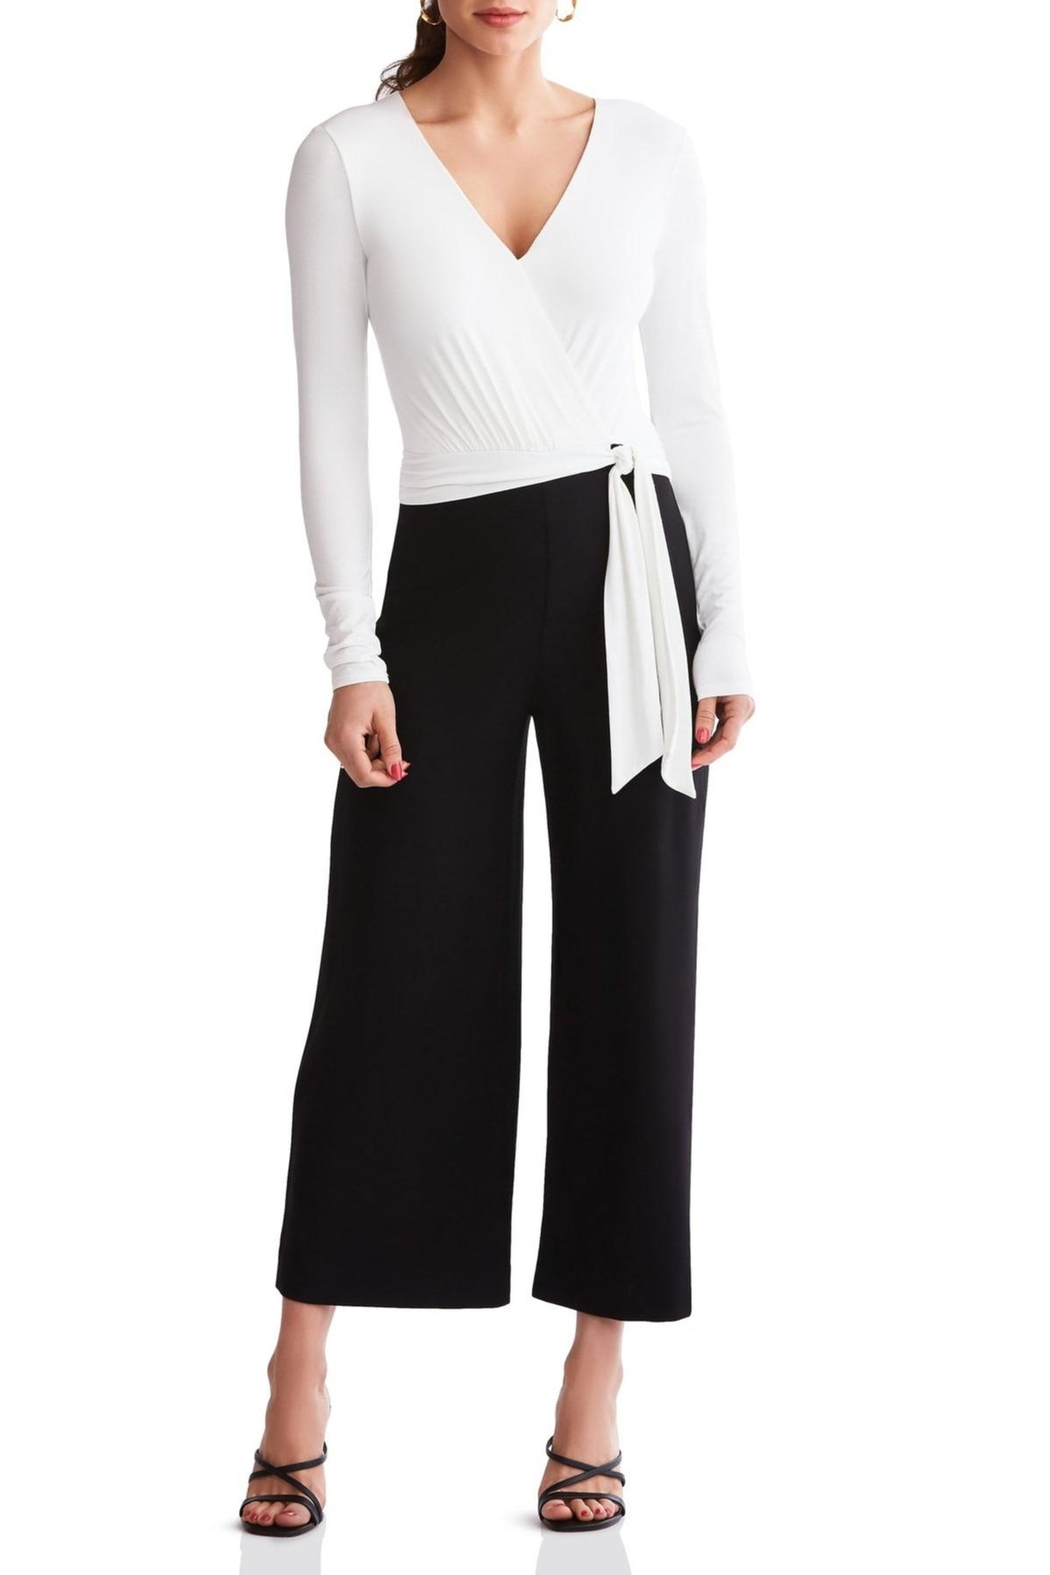 Bailey 44 Black & White Jumpsuit - Front Full Image